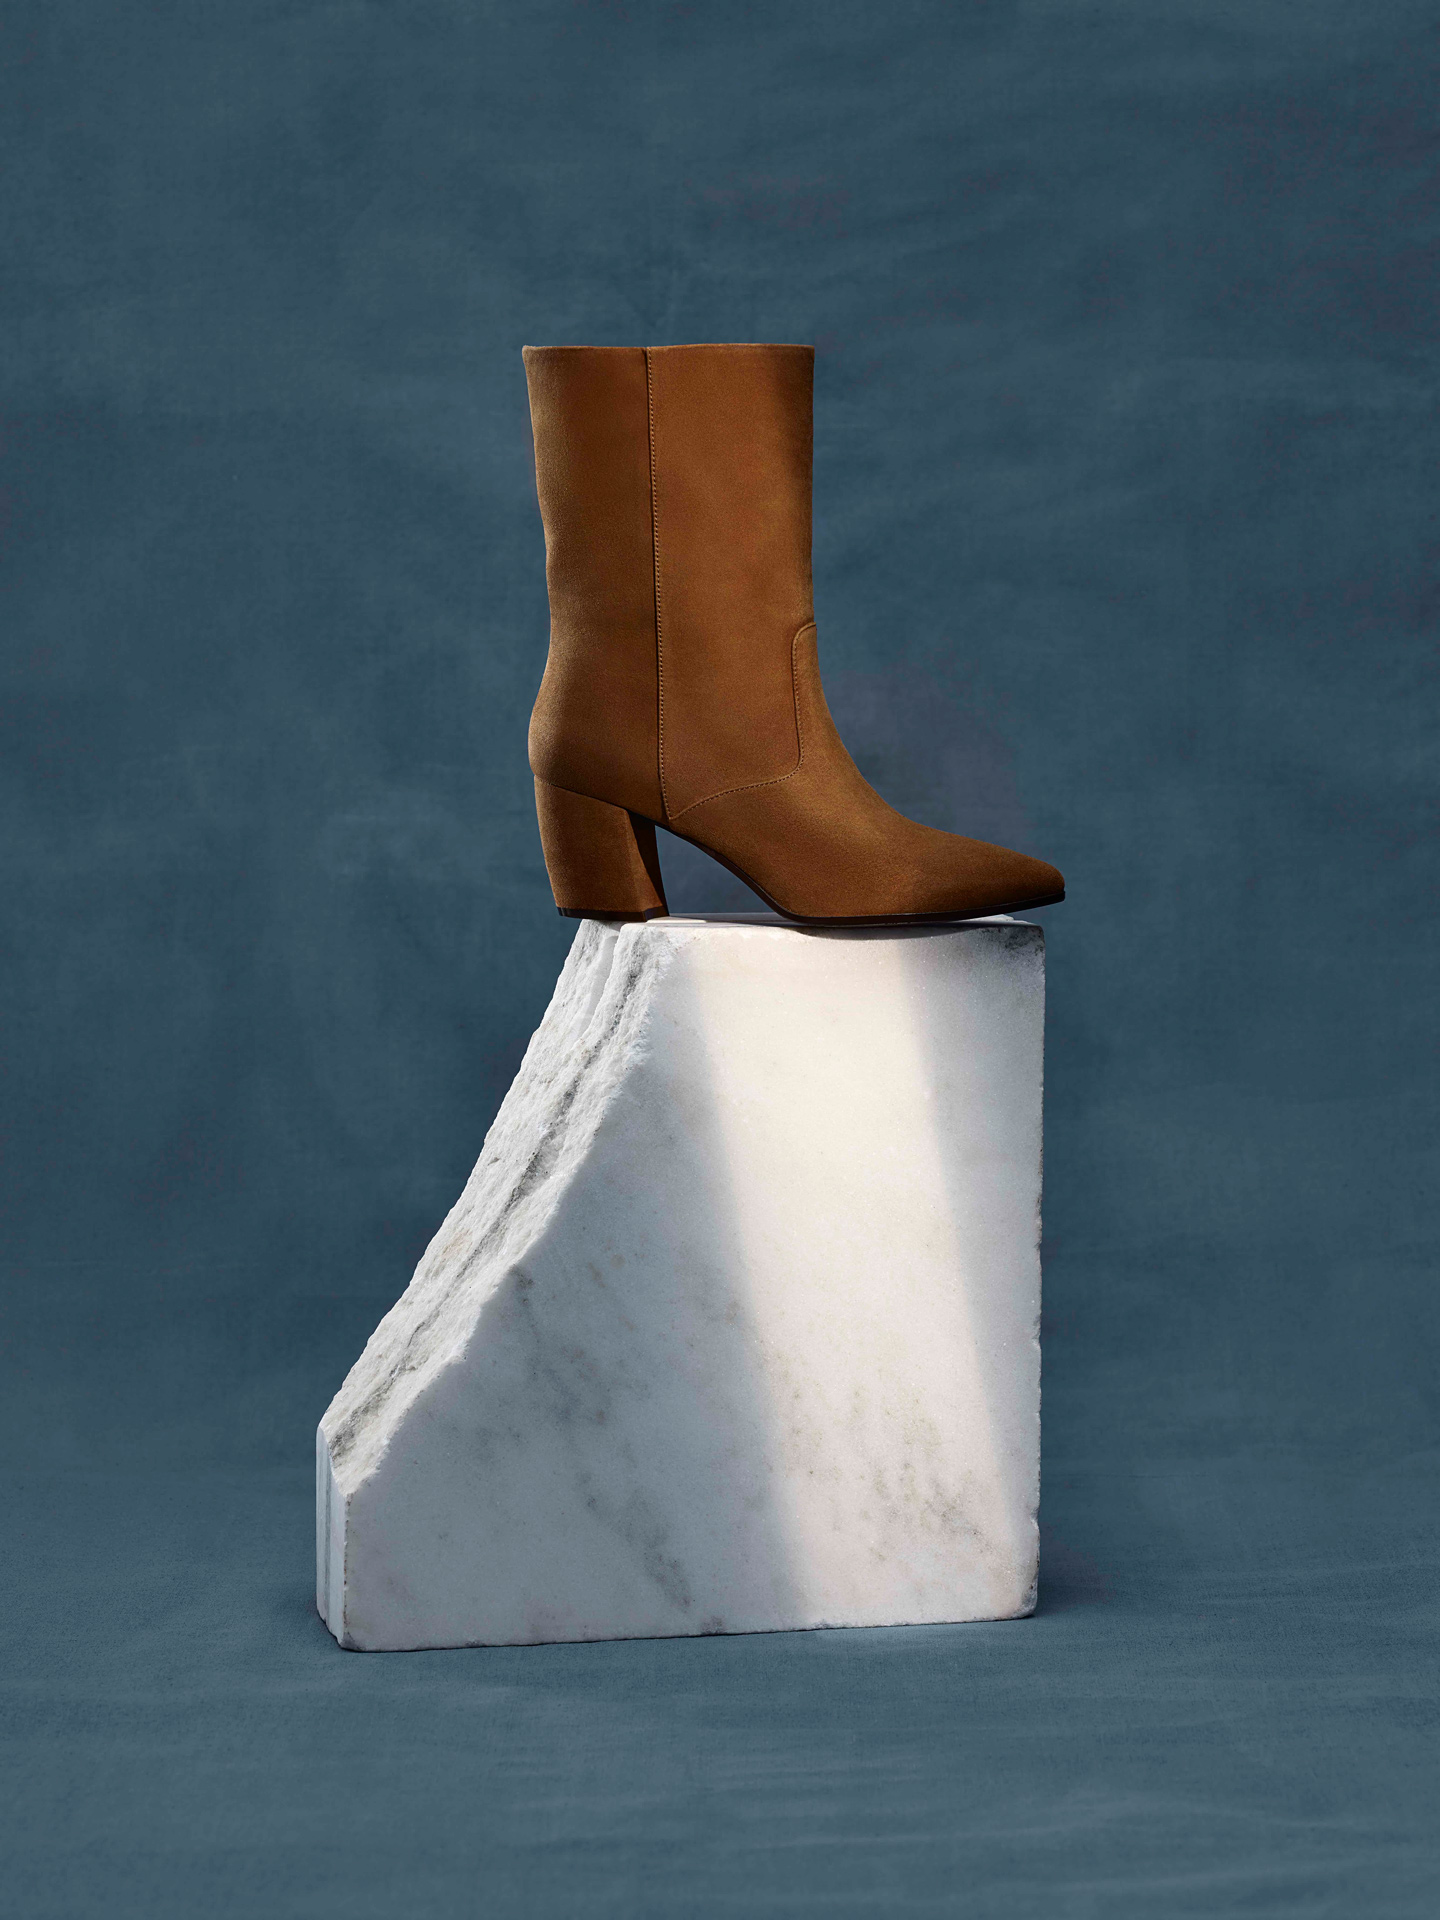 brown suede boot on piece of white marble on blue background by Maxyme G Delisle with artistic direction from Studio TB for Jean-Paul Fortin Fall collection